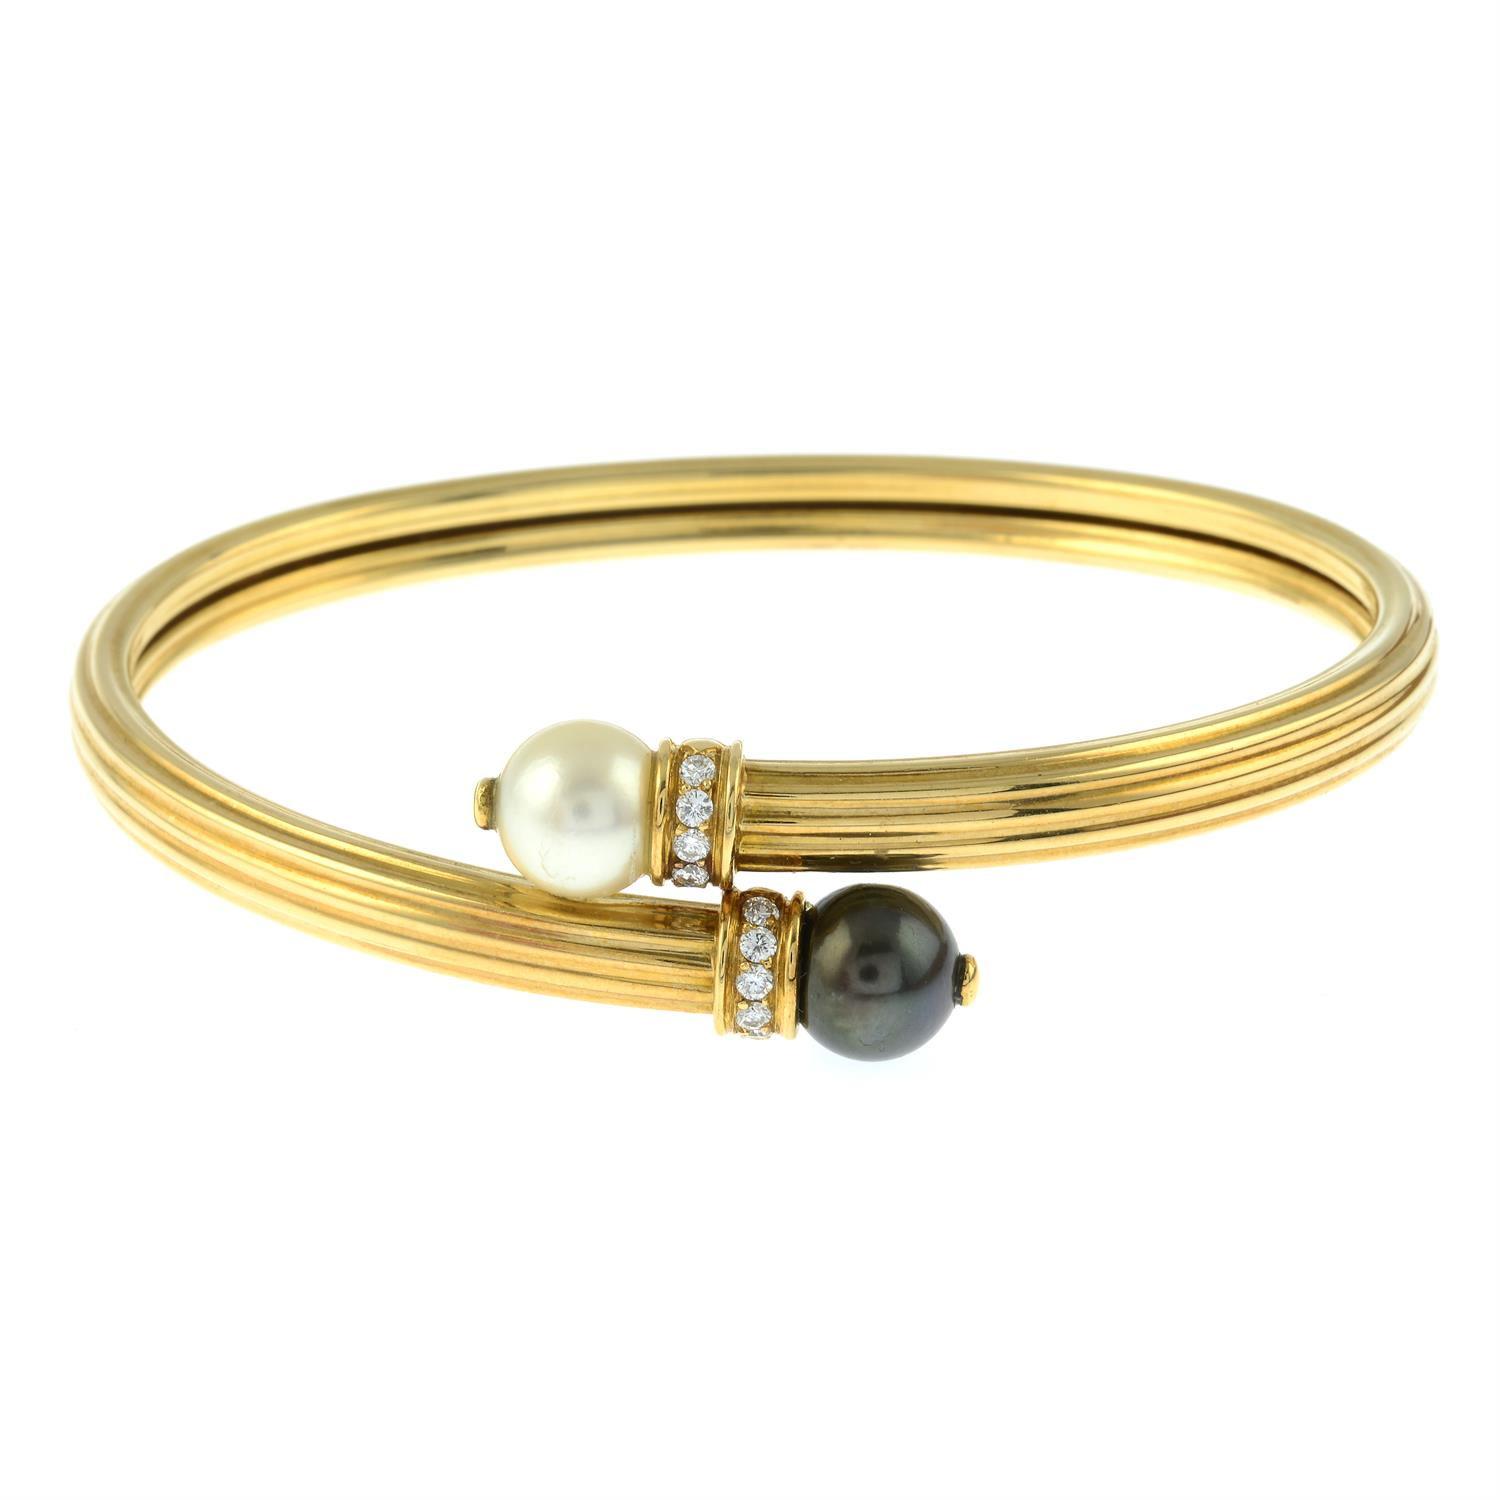 An 18ct gold grooved crossover bangle, with vari-hue cultured pearl and brilliant-cut diamond - Image 2 of 3